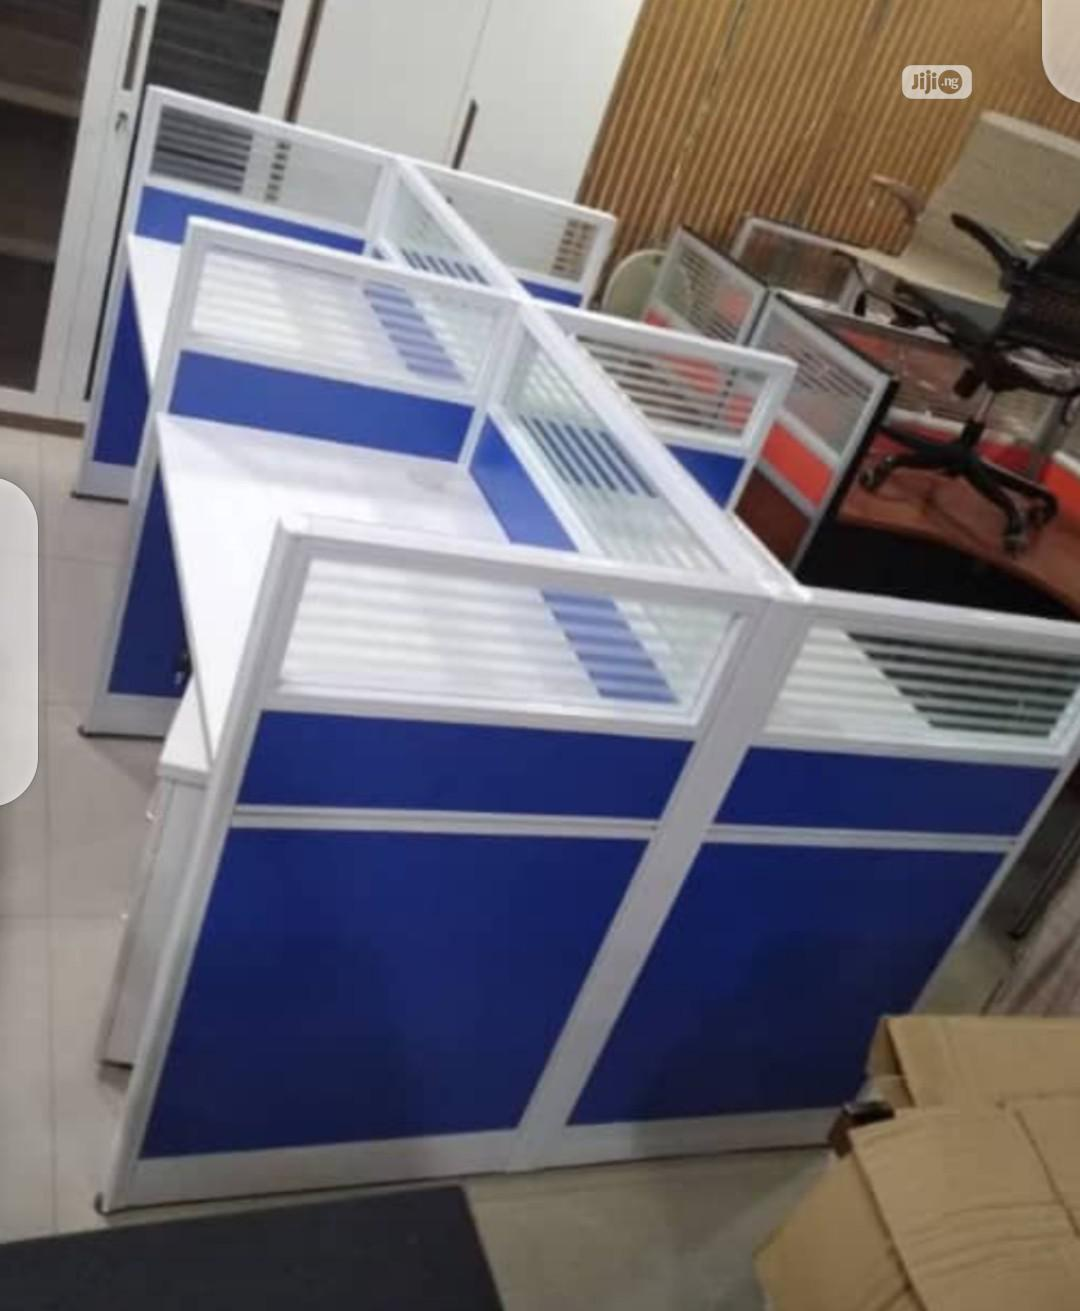 Workstation For Four People